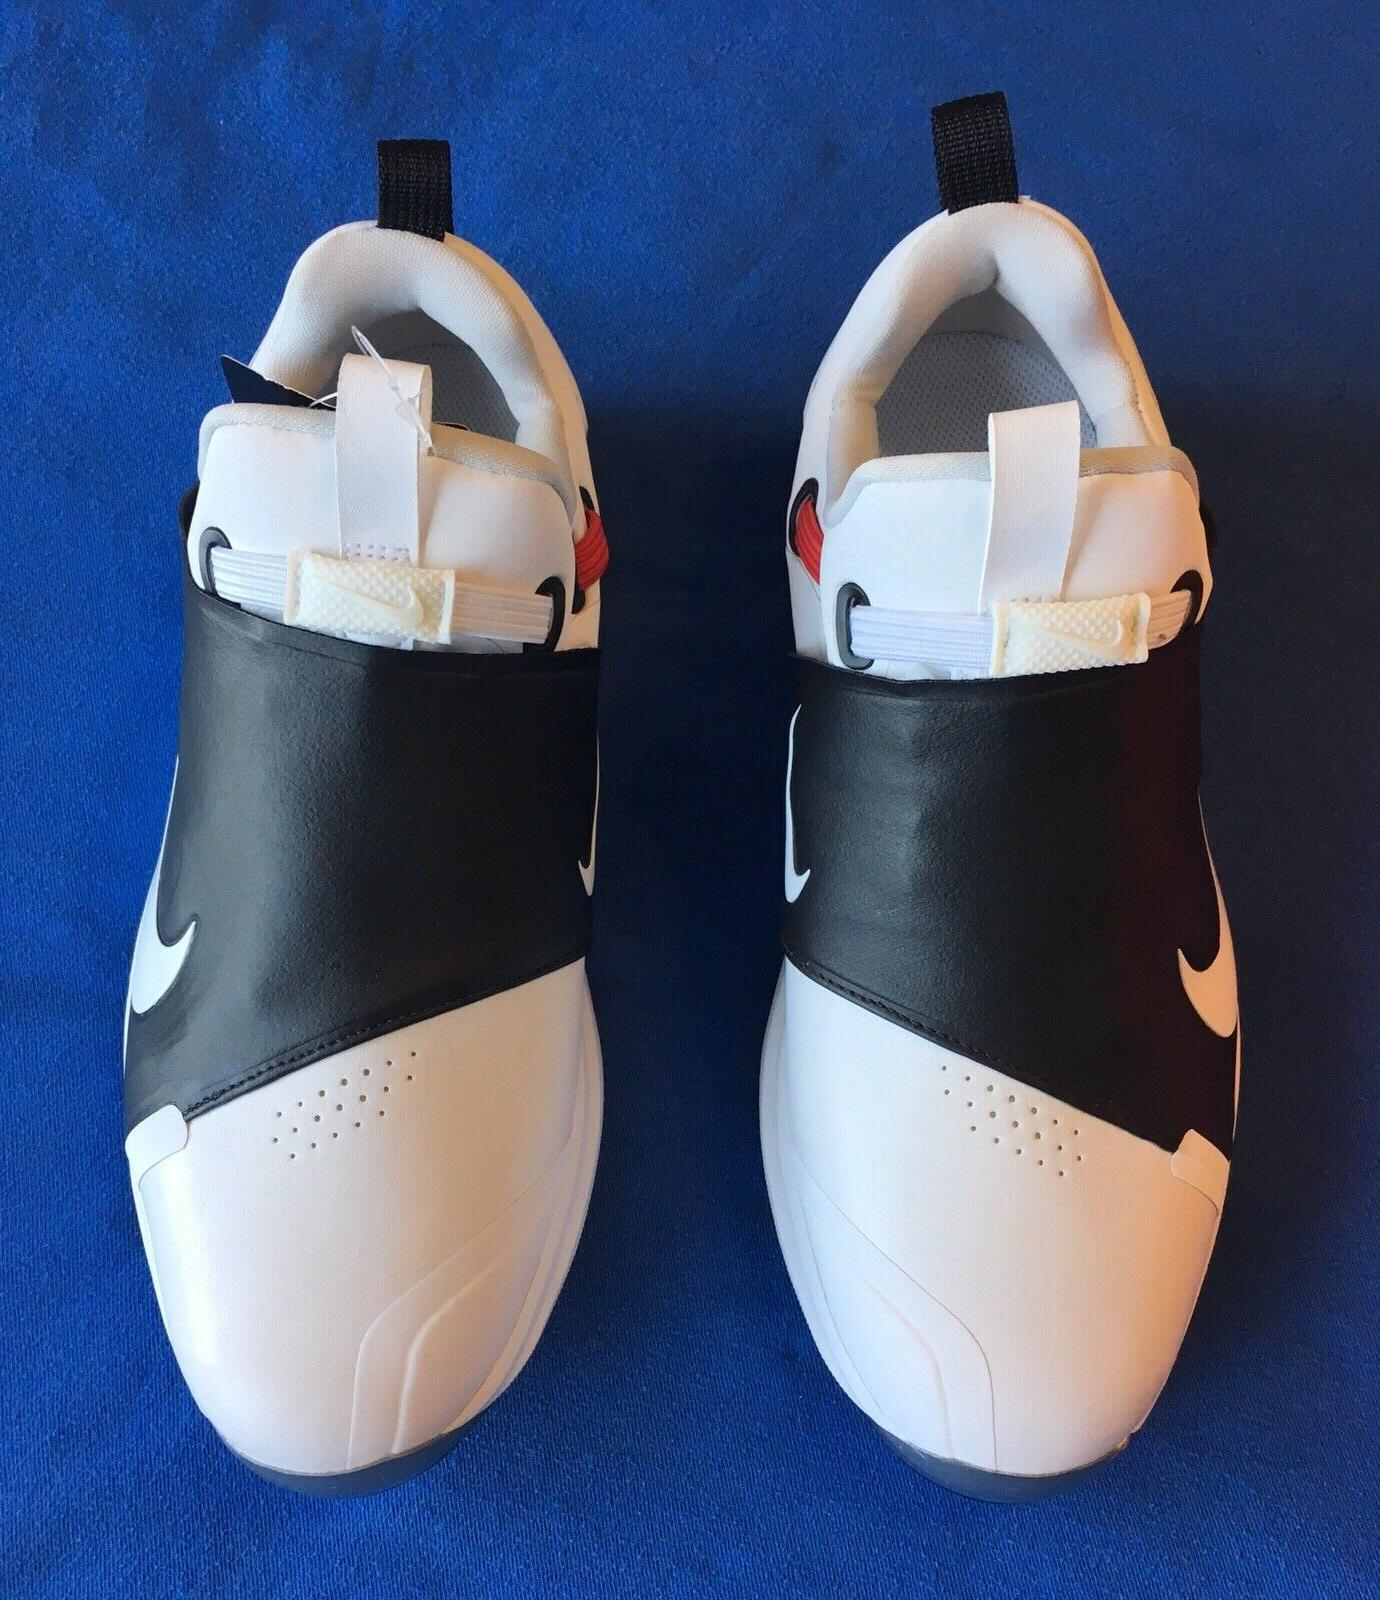 NEW Size Golf Shoes Cleats White Black